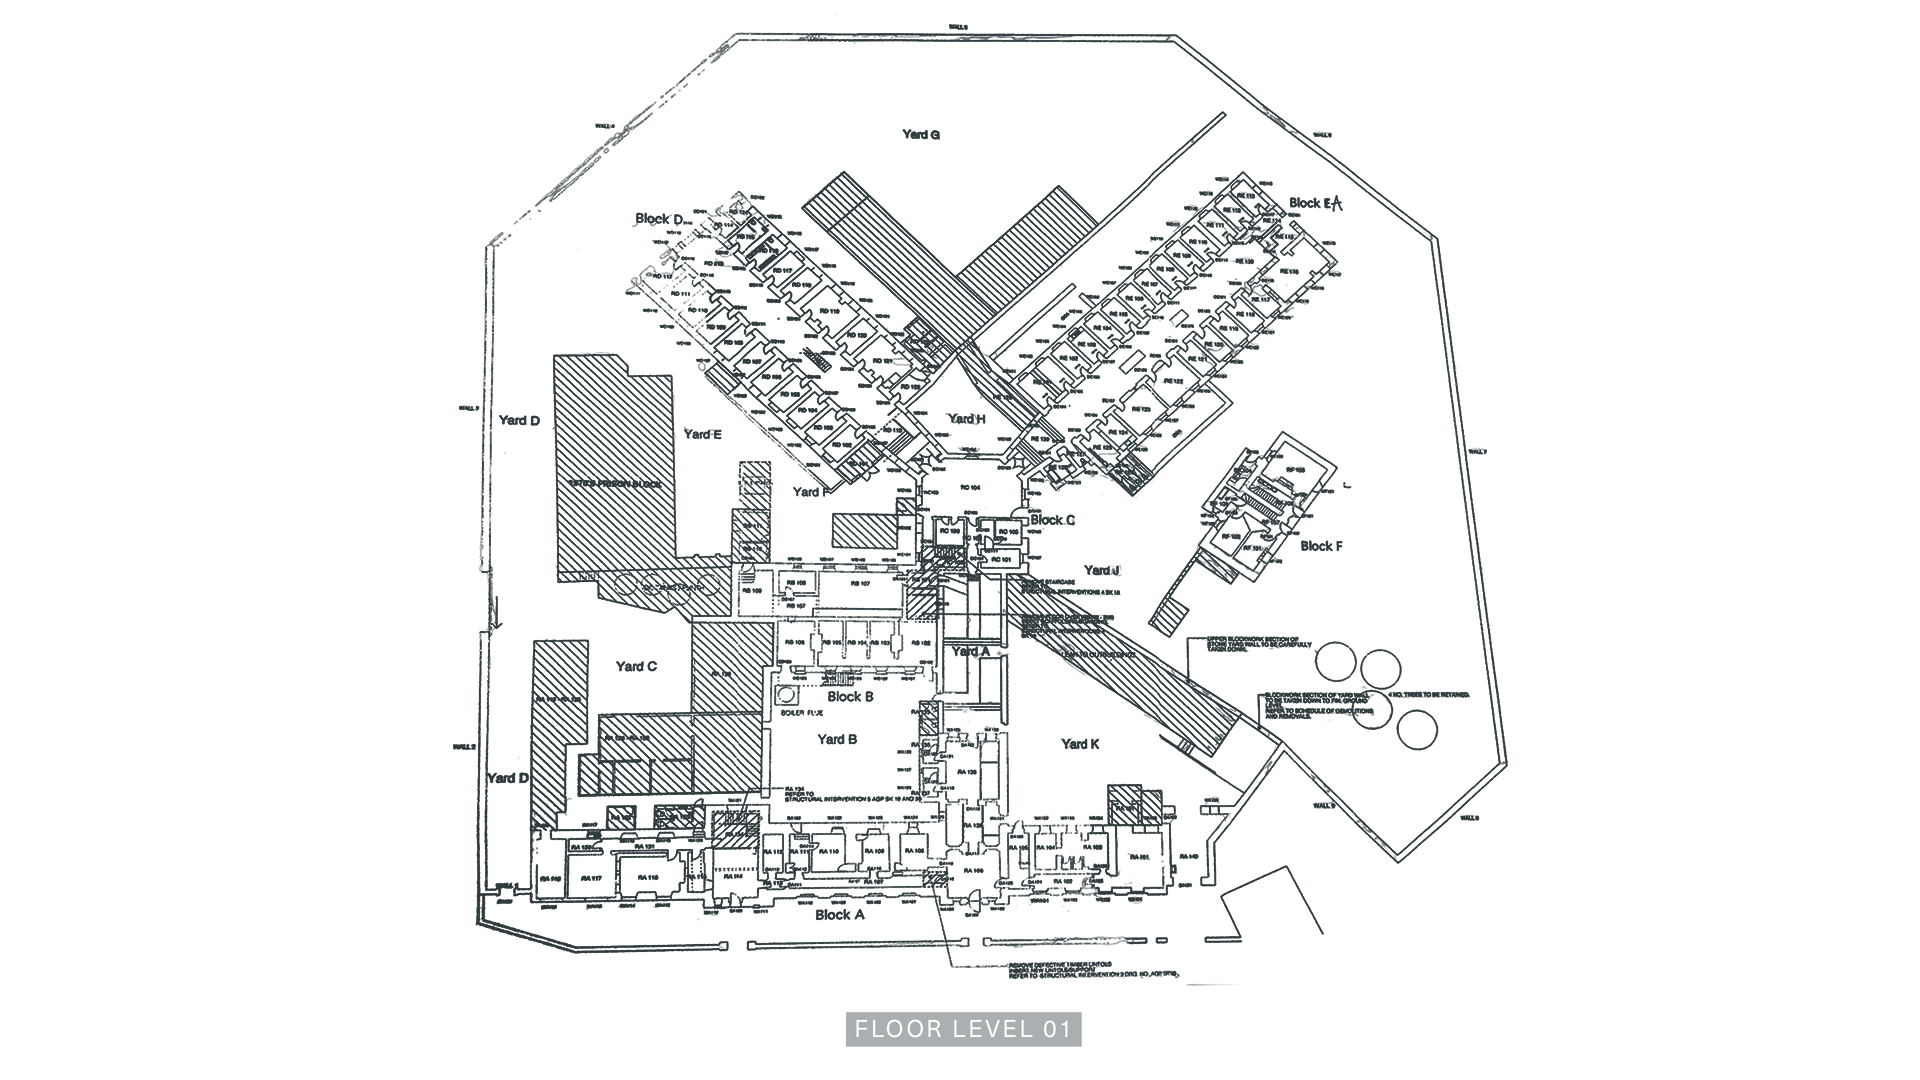 A Floor Plan of Level One of the Armagh Gaol.